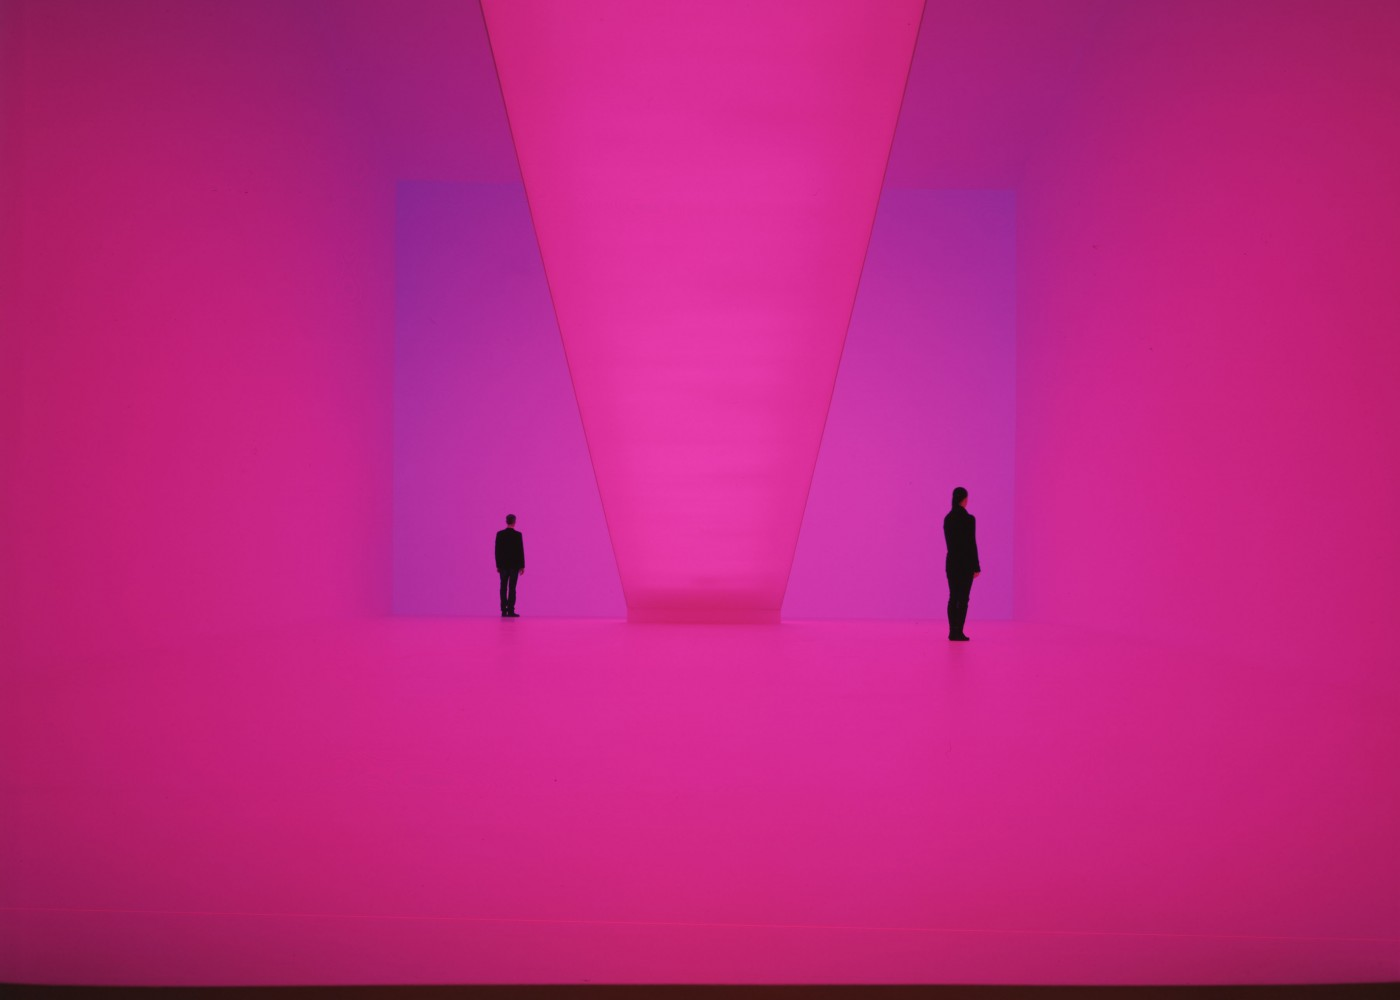 james-turrell-bridgets-bardo